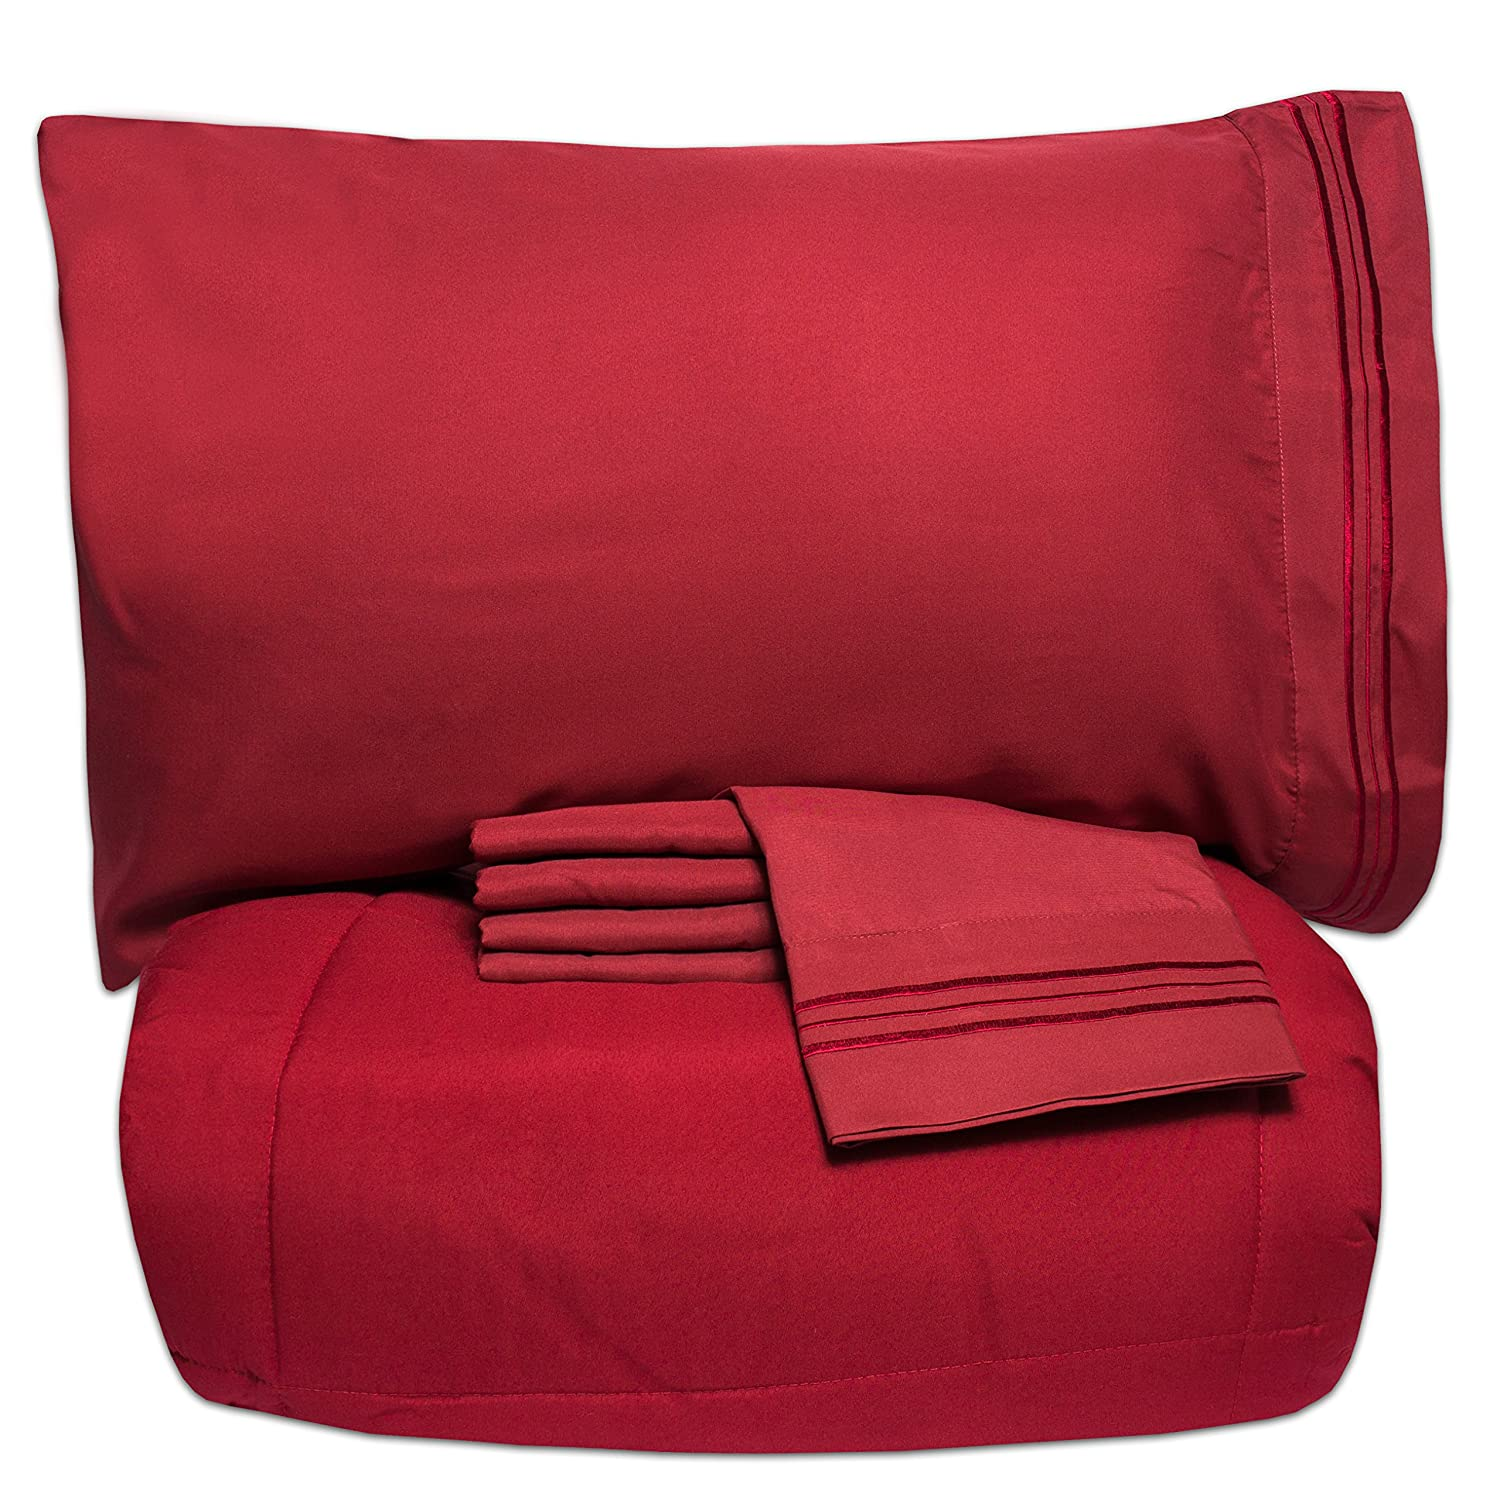 5 Piece Bed-In-A-Bag Solid Color Comforter and Sheet Set, Full, Burgundy